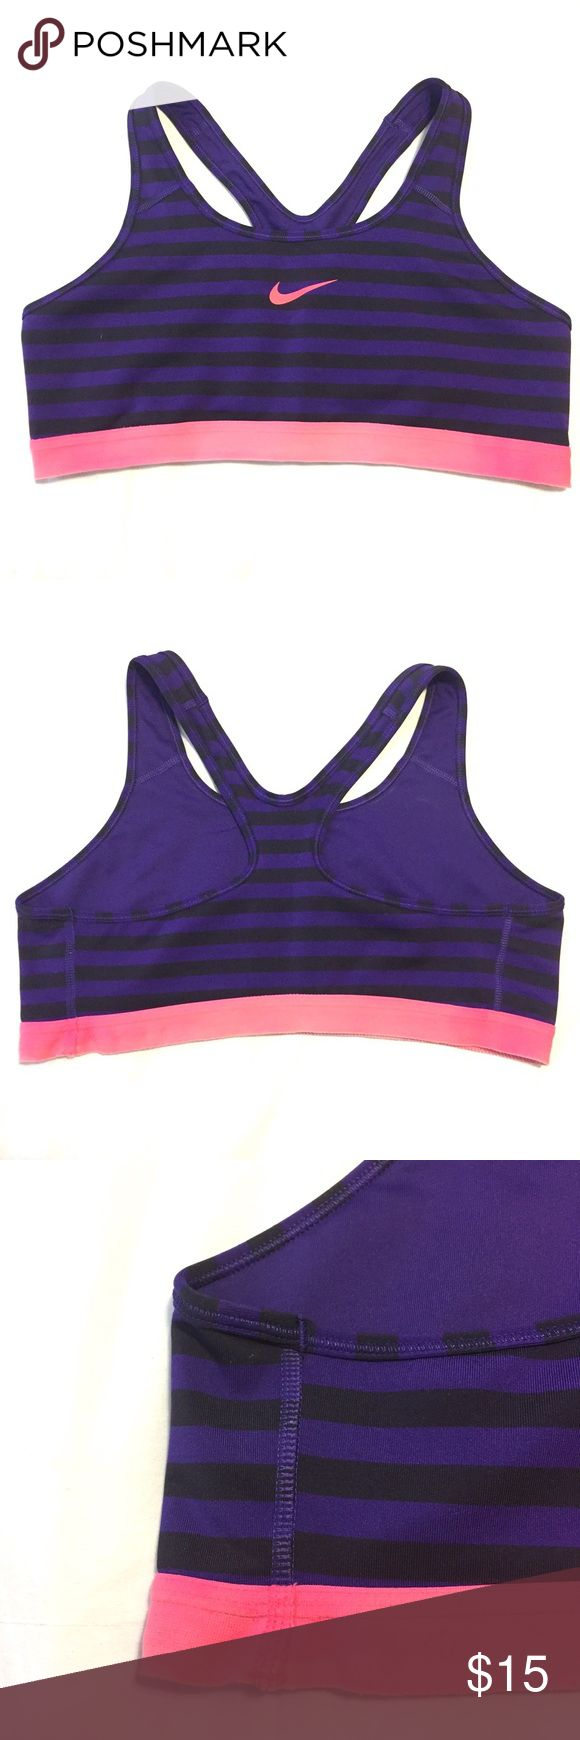 Nike Sports Bra - Purple Striped Gently used medium support purple and black striped sports bra with pink accents. Some wear (shown in photo 3) and fading in the center of the band. Nike Intimates & Sleepwear Bras